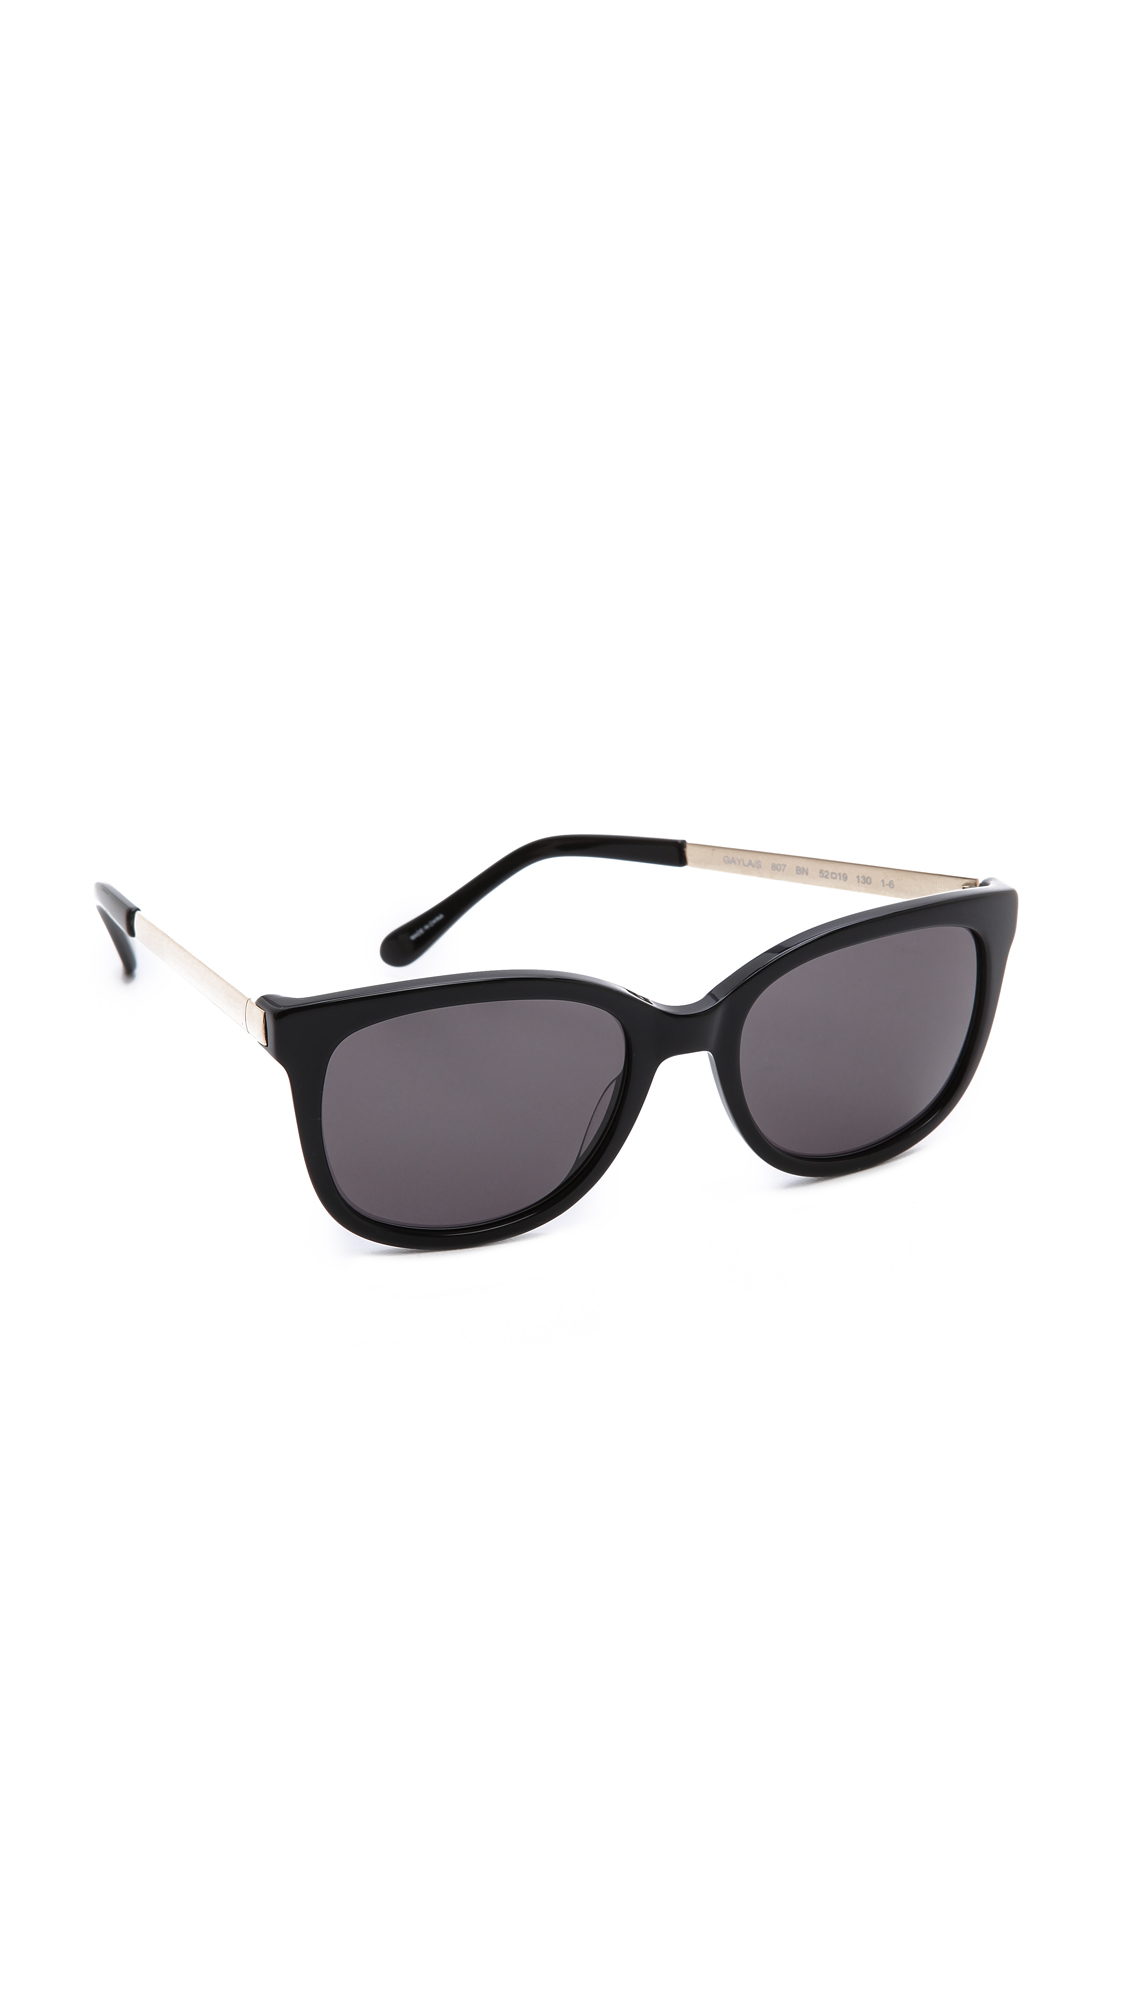 5f2c827d67ea7 Kate Spade New York Gayla Sunglasses